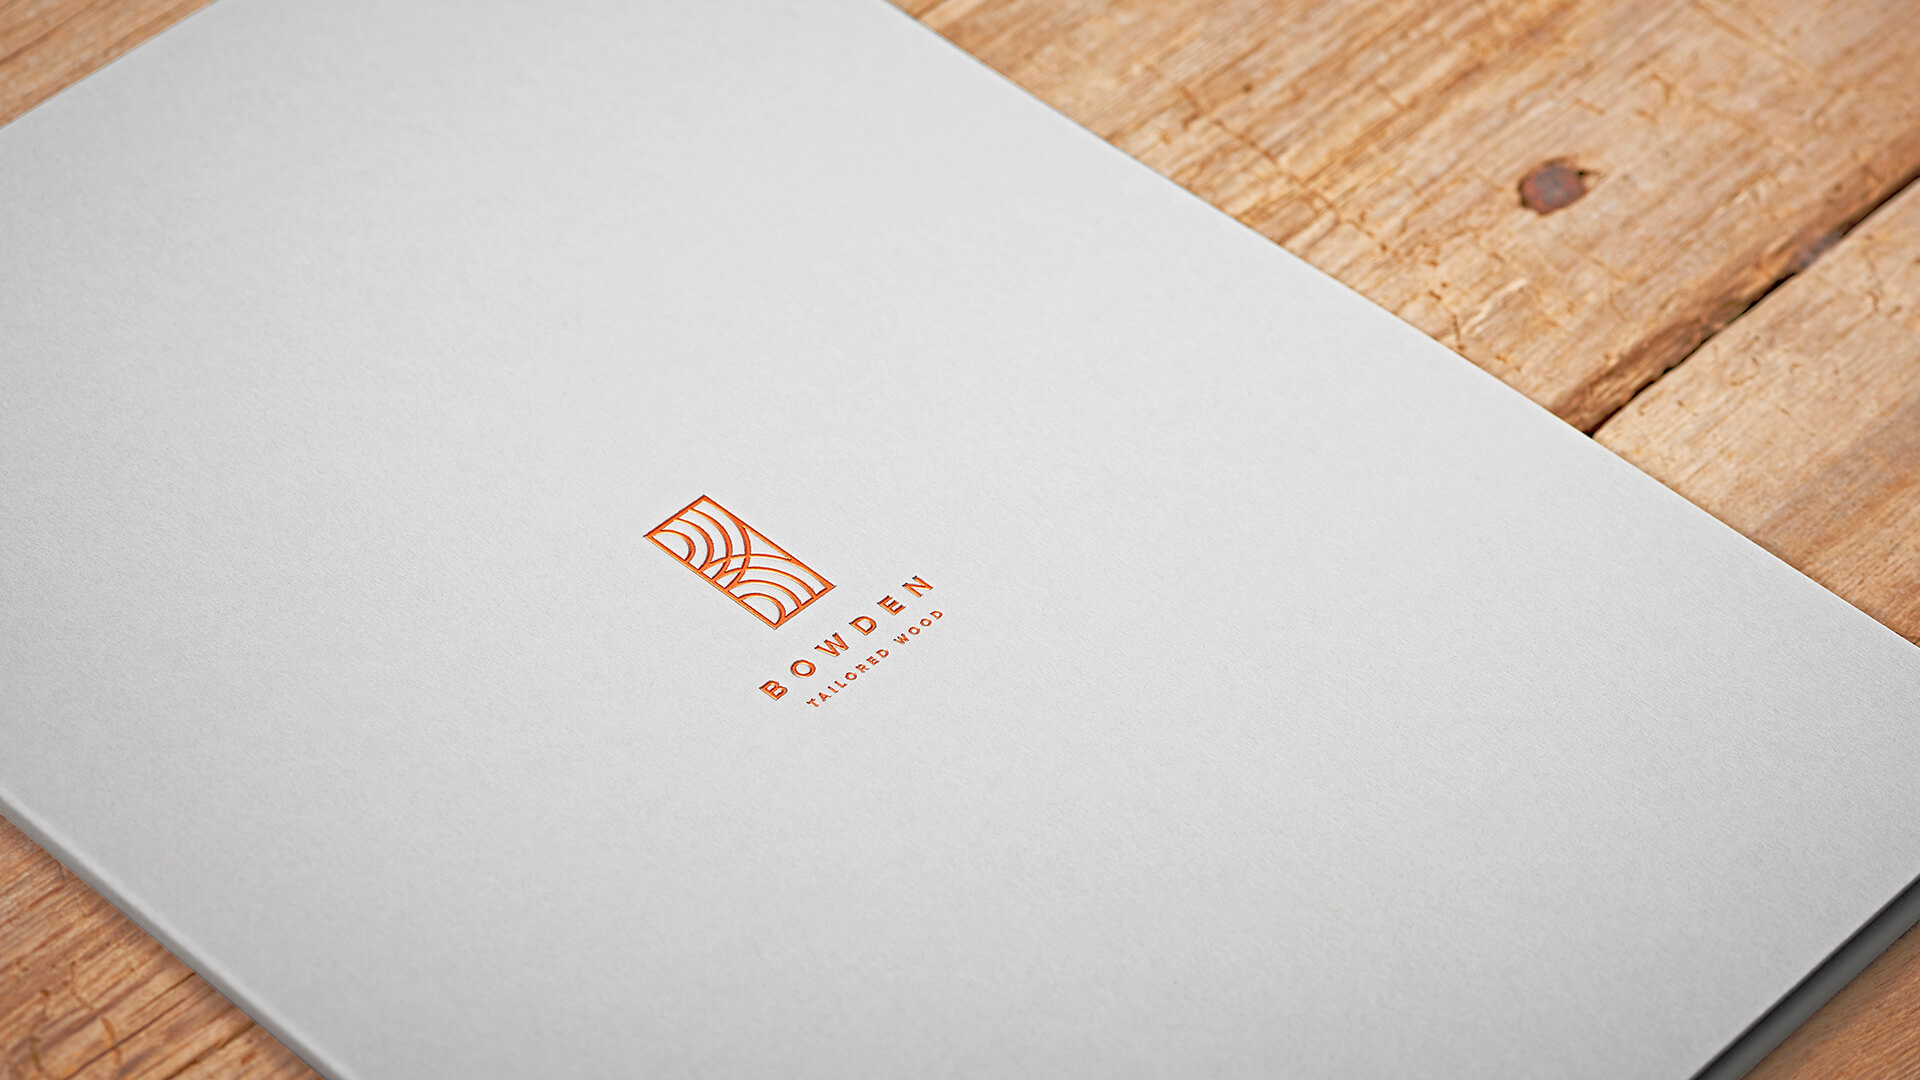 Bowden Joinery | We Are 778 Bournemouth Poole Branding Graphic Design Web Development Creative Agency